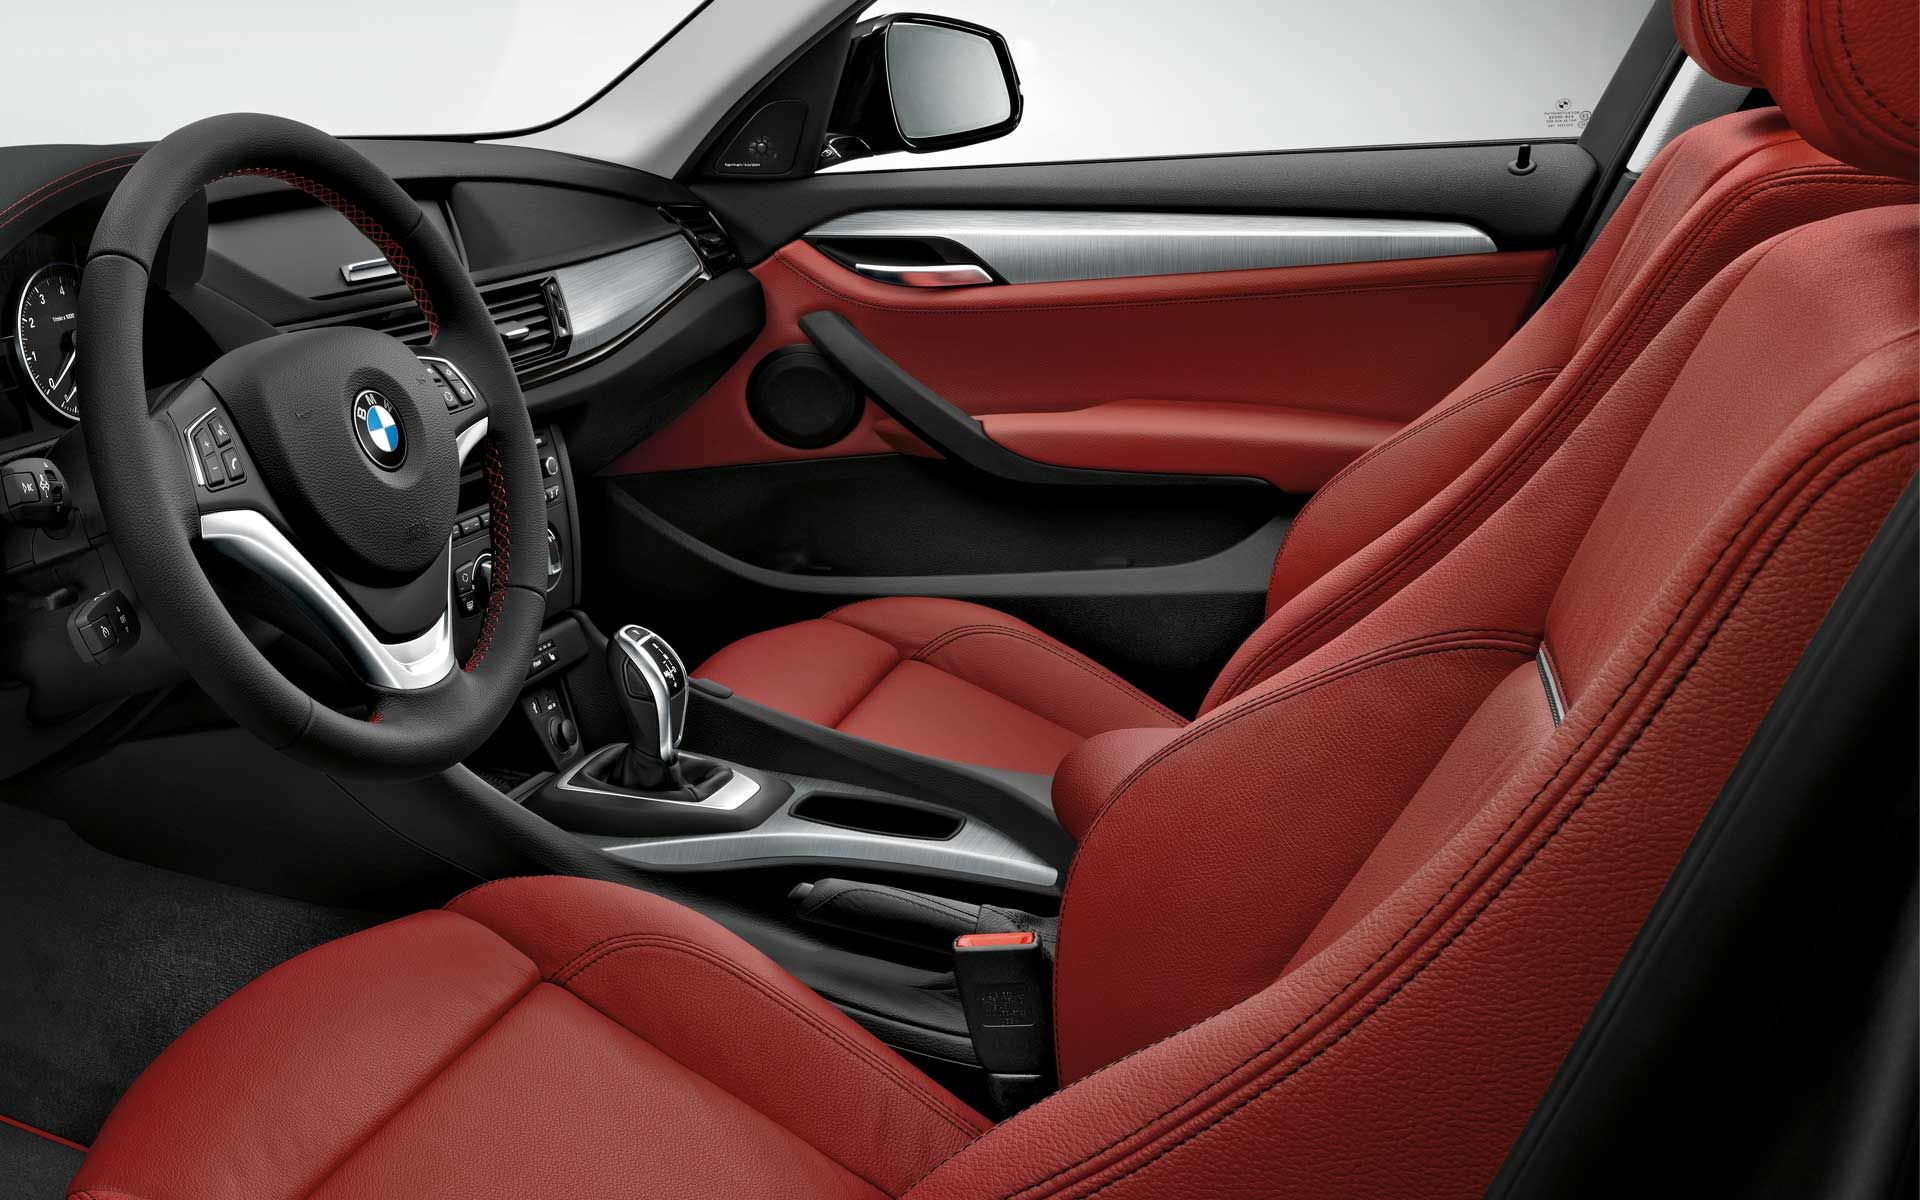 The Bmw X1 With Coral Red Nevada Leather Interior With Images